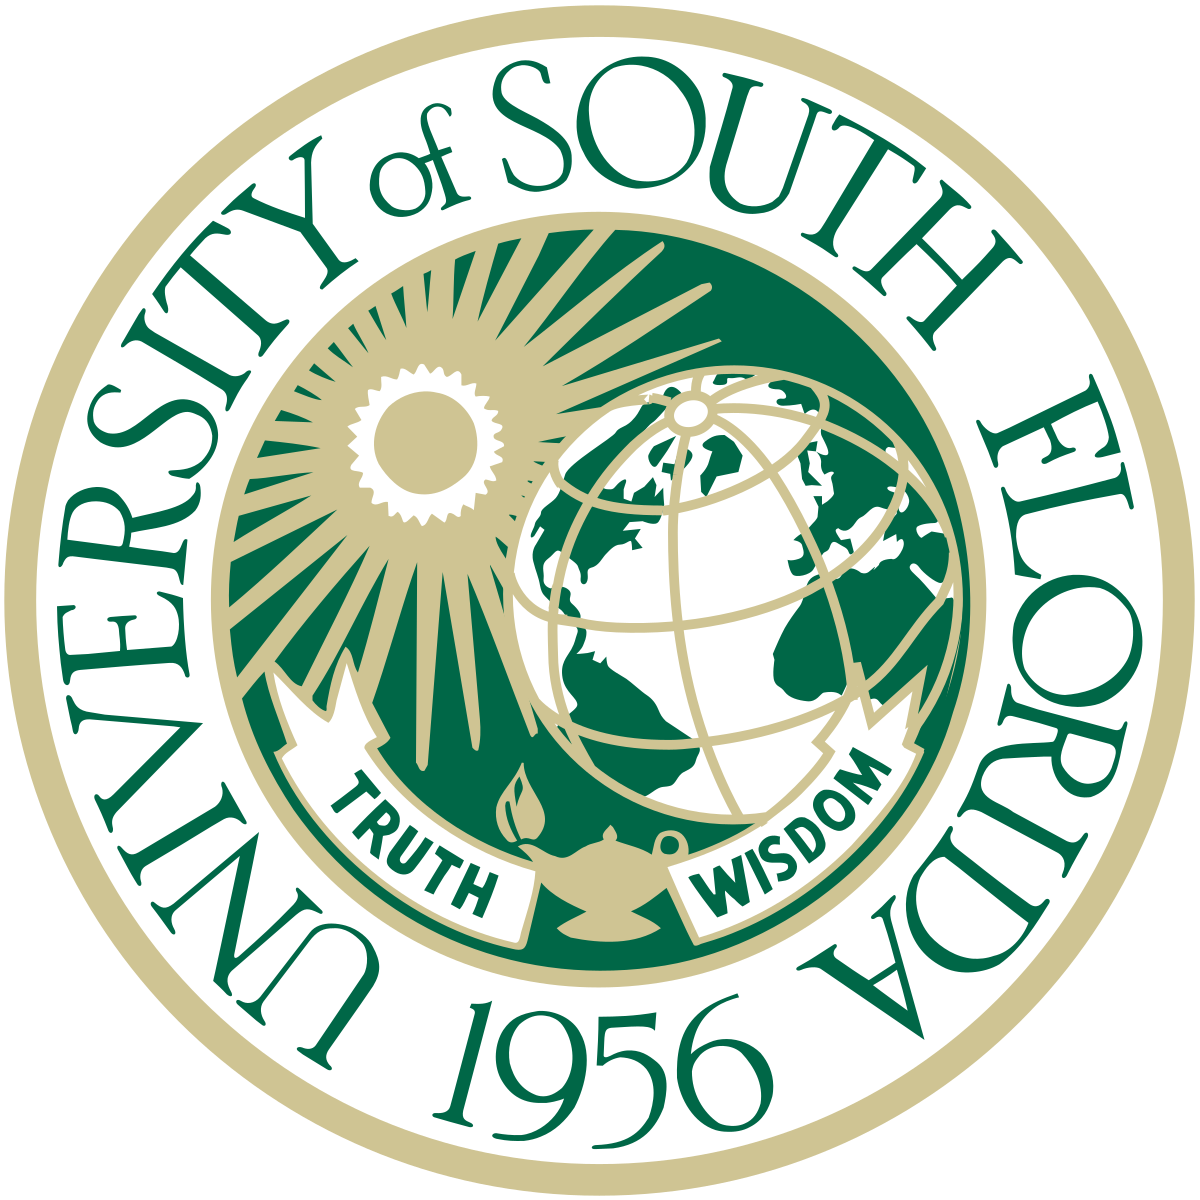 University of south florida logo png. Wikipedia